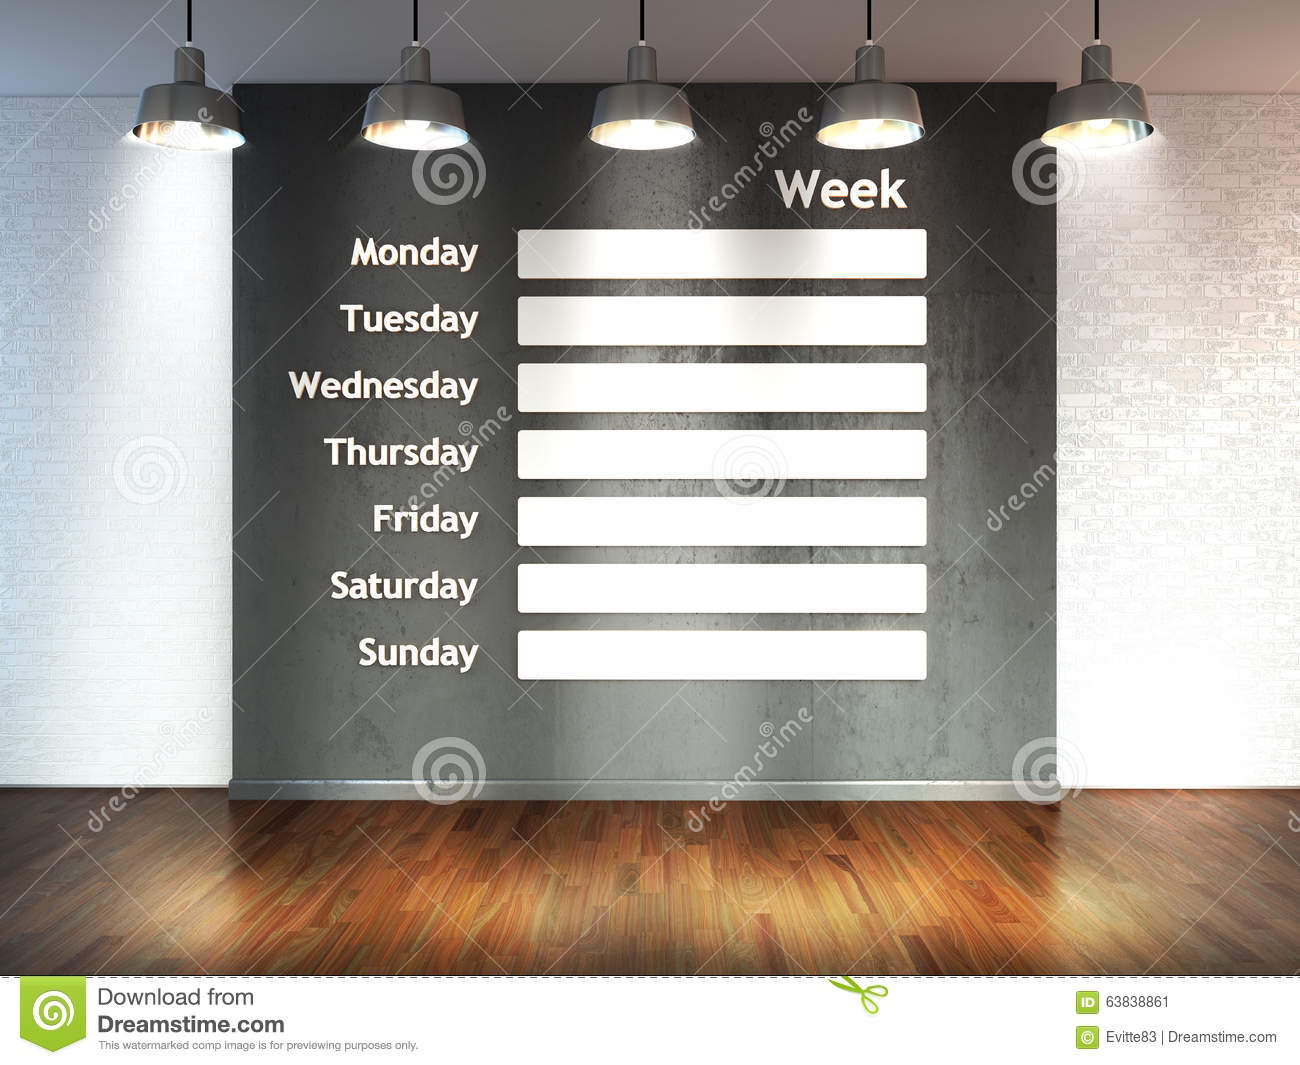 Room with spotlight lamps, empty 3d space with wooden floor and brick wall as background with wall calendar. Schedule memo manag